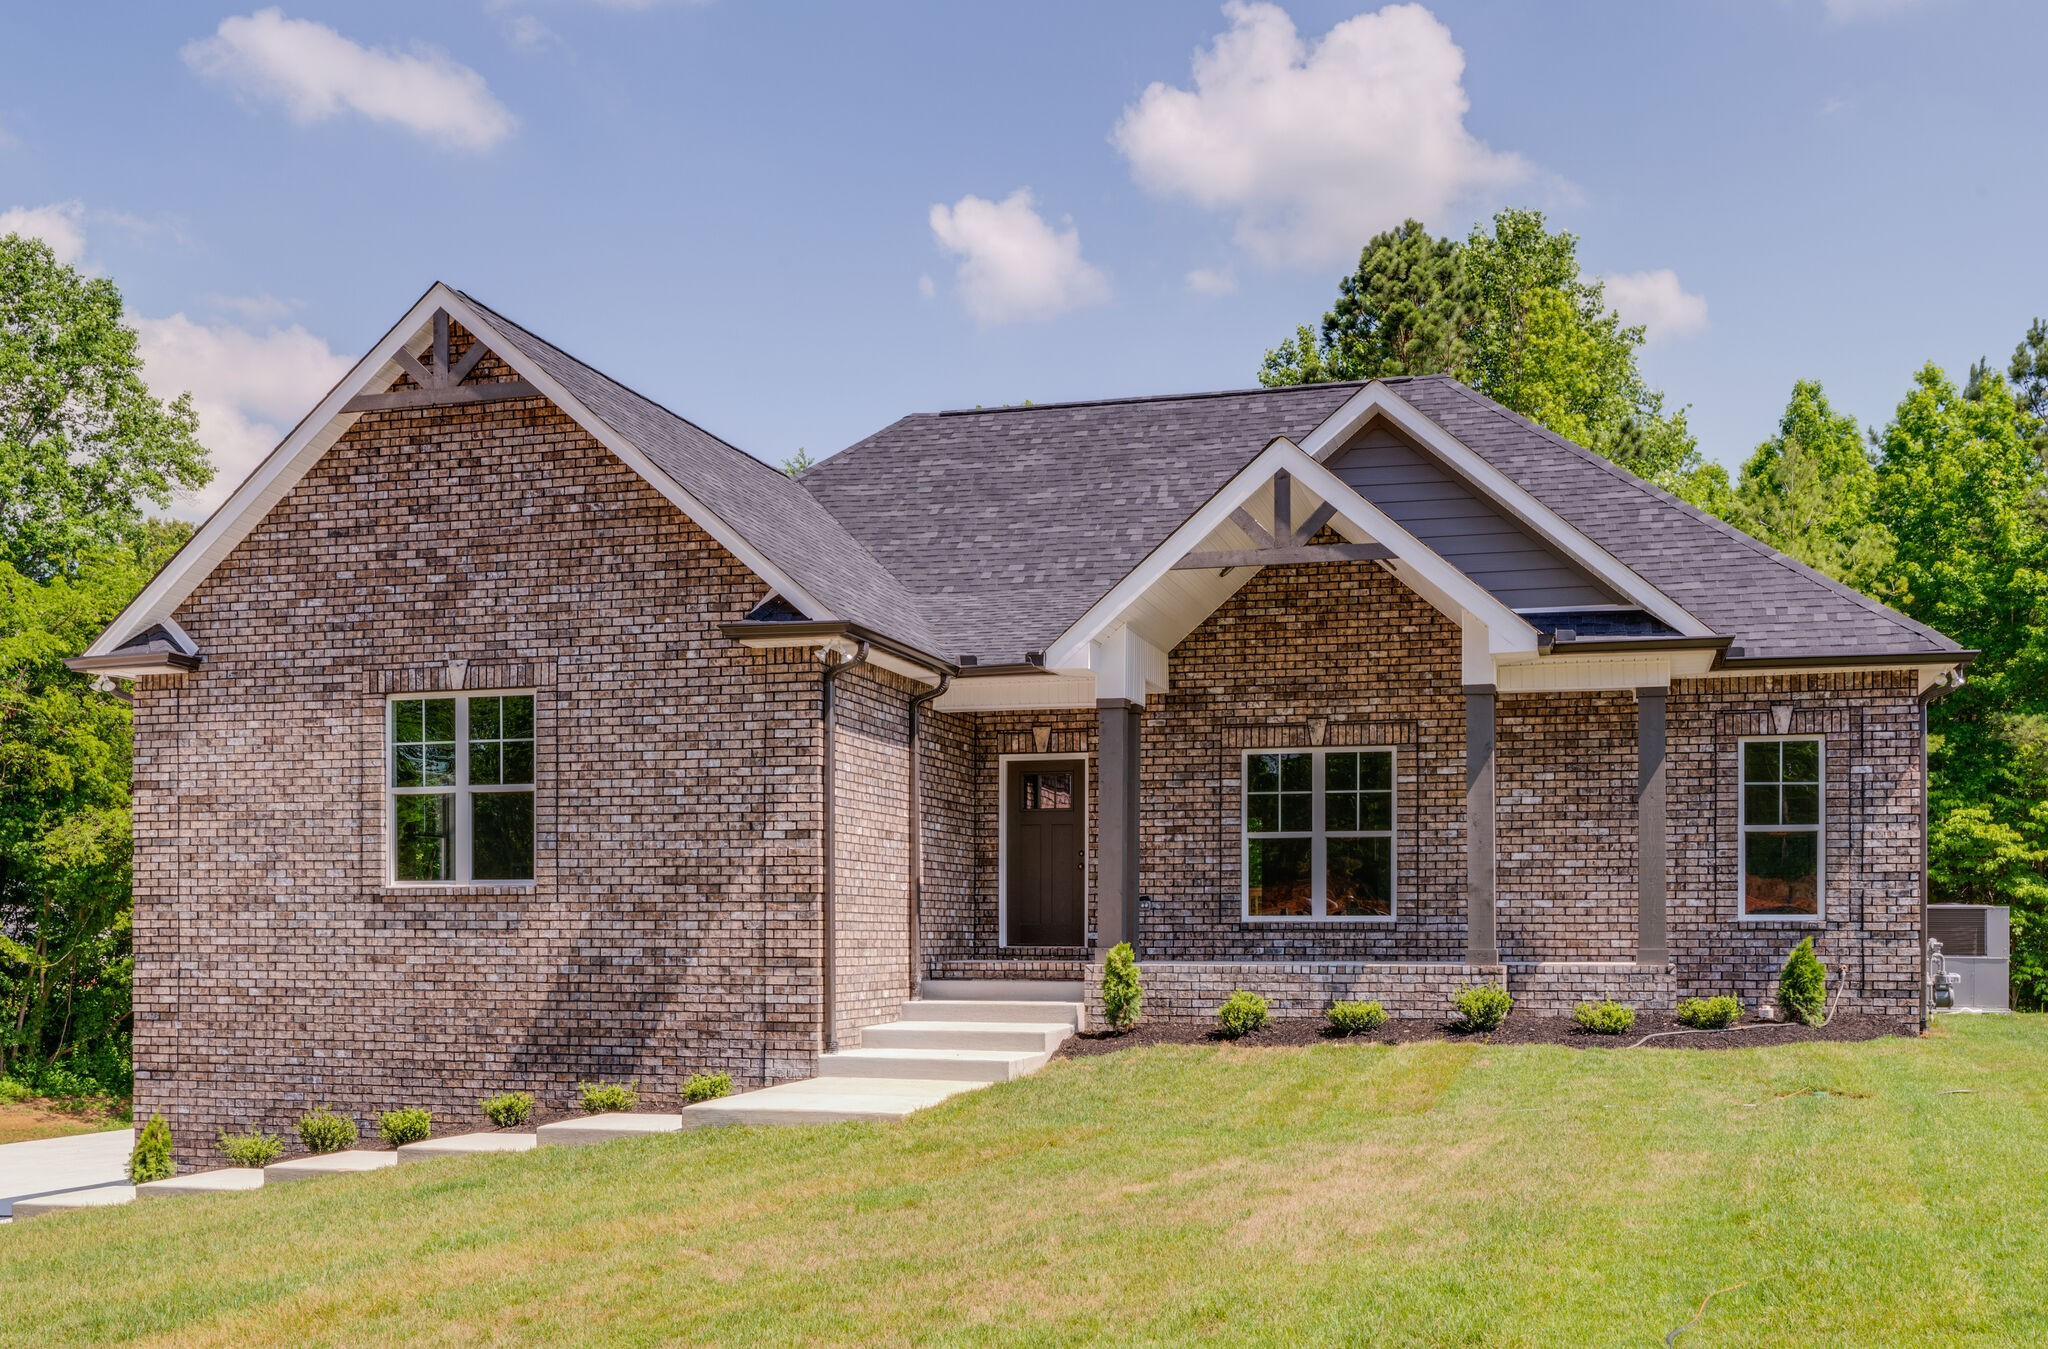 6083 W Mayflower Ct Property Photo - Greenbrier, TN real estate listing